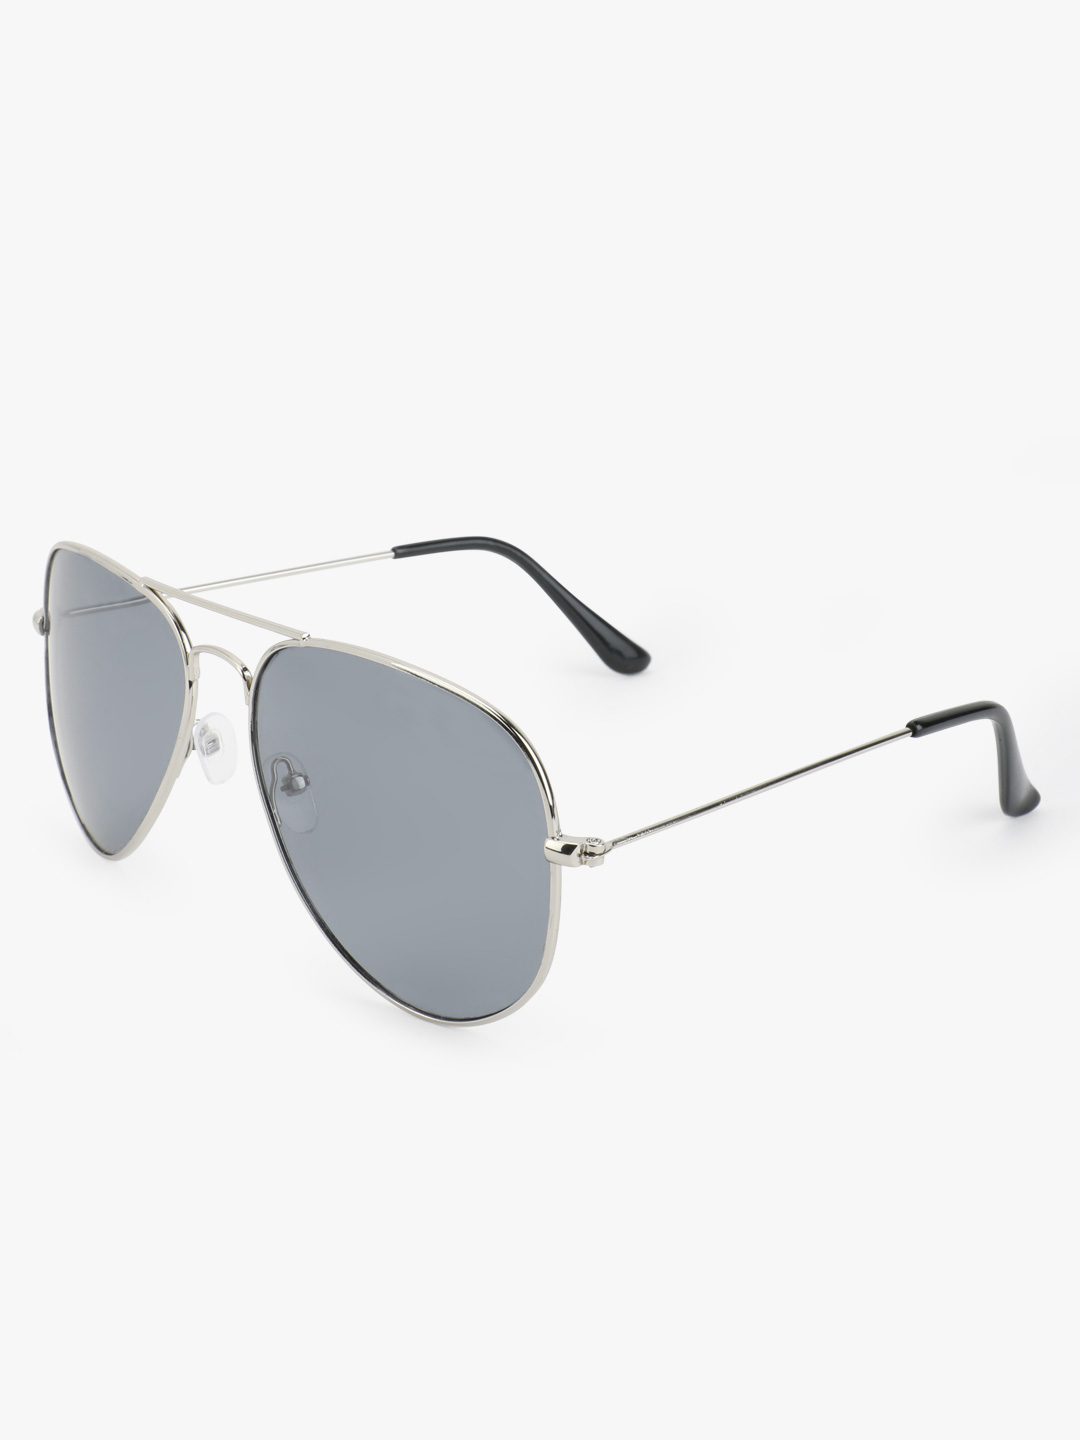 Kindred Blue Polarized Pilot Sunglasses 1